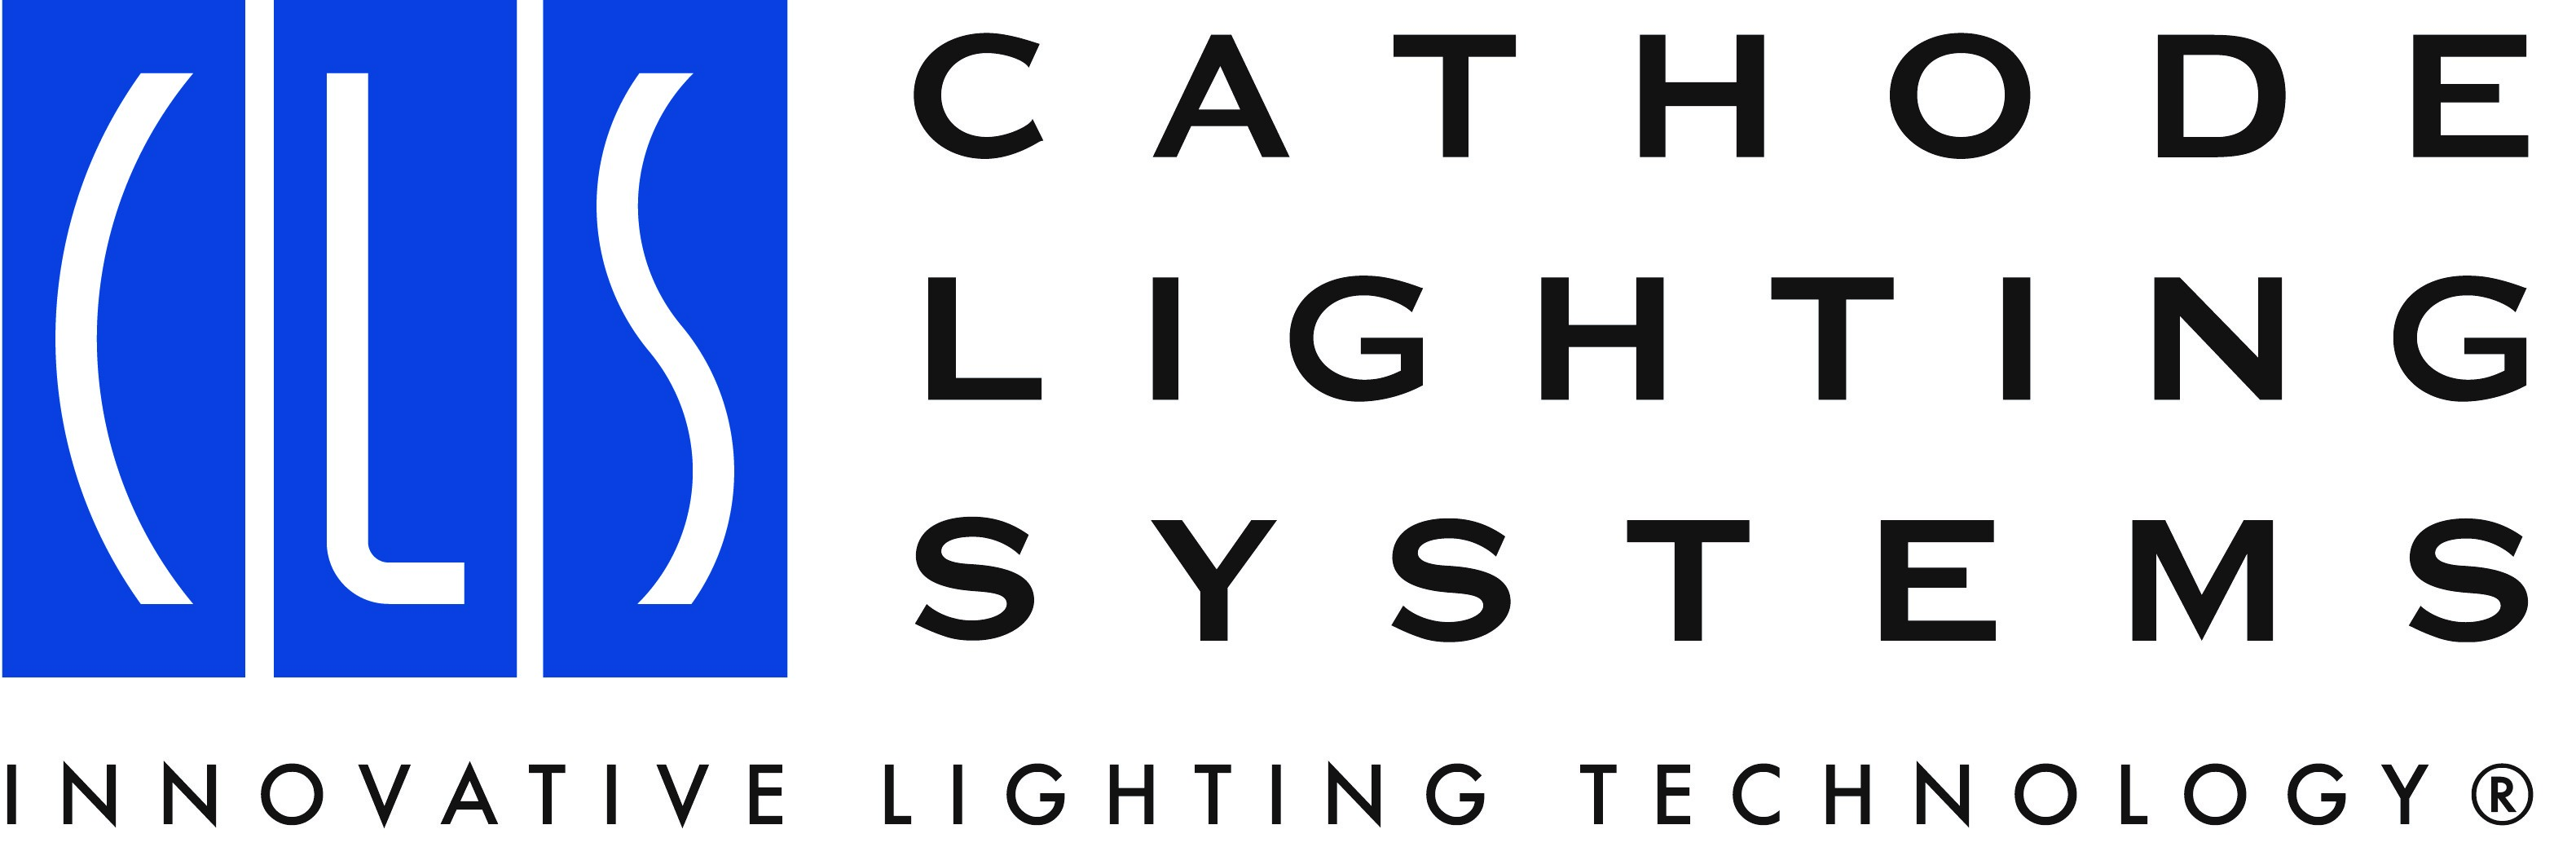 Cathode Lighting Systems